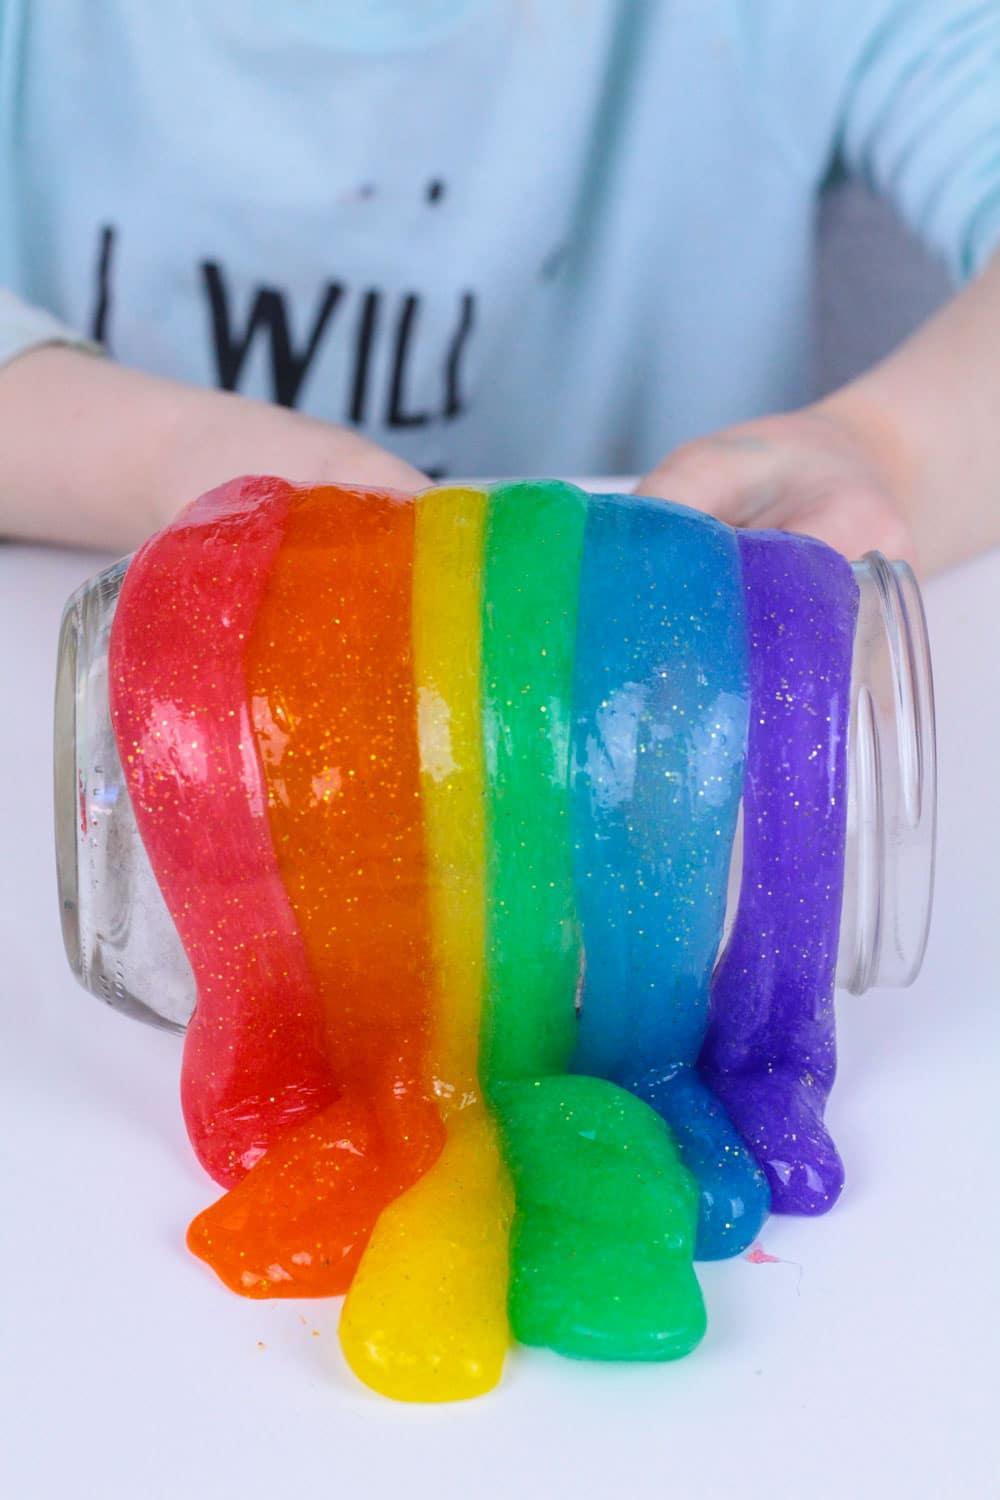 Love rainbows? Love glitter? Combine your loves in this beautiful glitter rainbow slime recipe! It's the perfect slime recipe for St. Patrick's Day or any time you need a burst of rainbow color in your classroom or home!